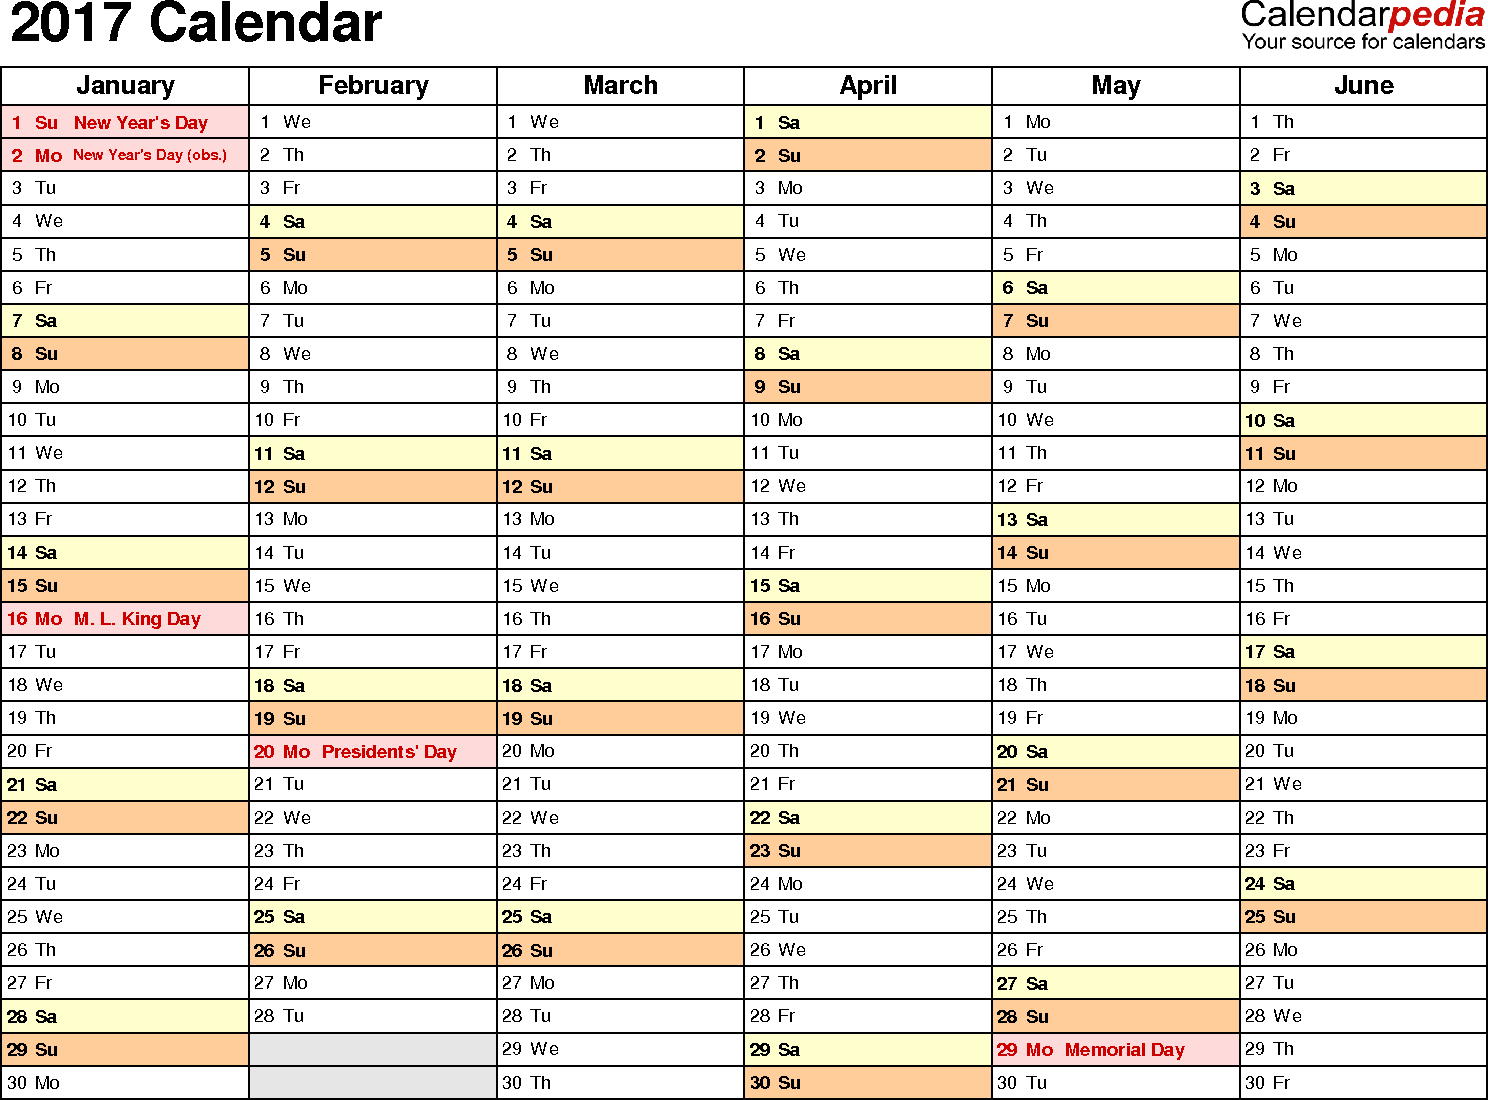 Ediblewildsus  Outstanding  Calendar  Download  Free Printable Excel Templates Xls With Handsome Template   Calendar For Excel Months Horizontally  Pages Landscape Orientation With Divine Estimate Template Excel Also Help With Excel Formulas In Addition Excel Connector For Salesforce And Ms Excel Password Remover Free Download As Well As Ms Excel Value Error Additionally Wedding Schedule Template Excel From Calendarpediacom With Ediblewildsus  Handsome  Calendar  Download  Free Printable Excel Templates Xls With Divine Template   Calendar For Excel Months Horizontally  Pages Landscape Orientation And Outstanding Estimate Template Excel Also Help With Excel Formulas In Addition Excel Connector For Salesforce From Calendarpediacom